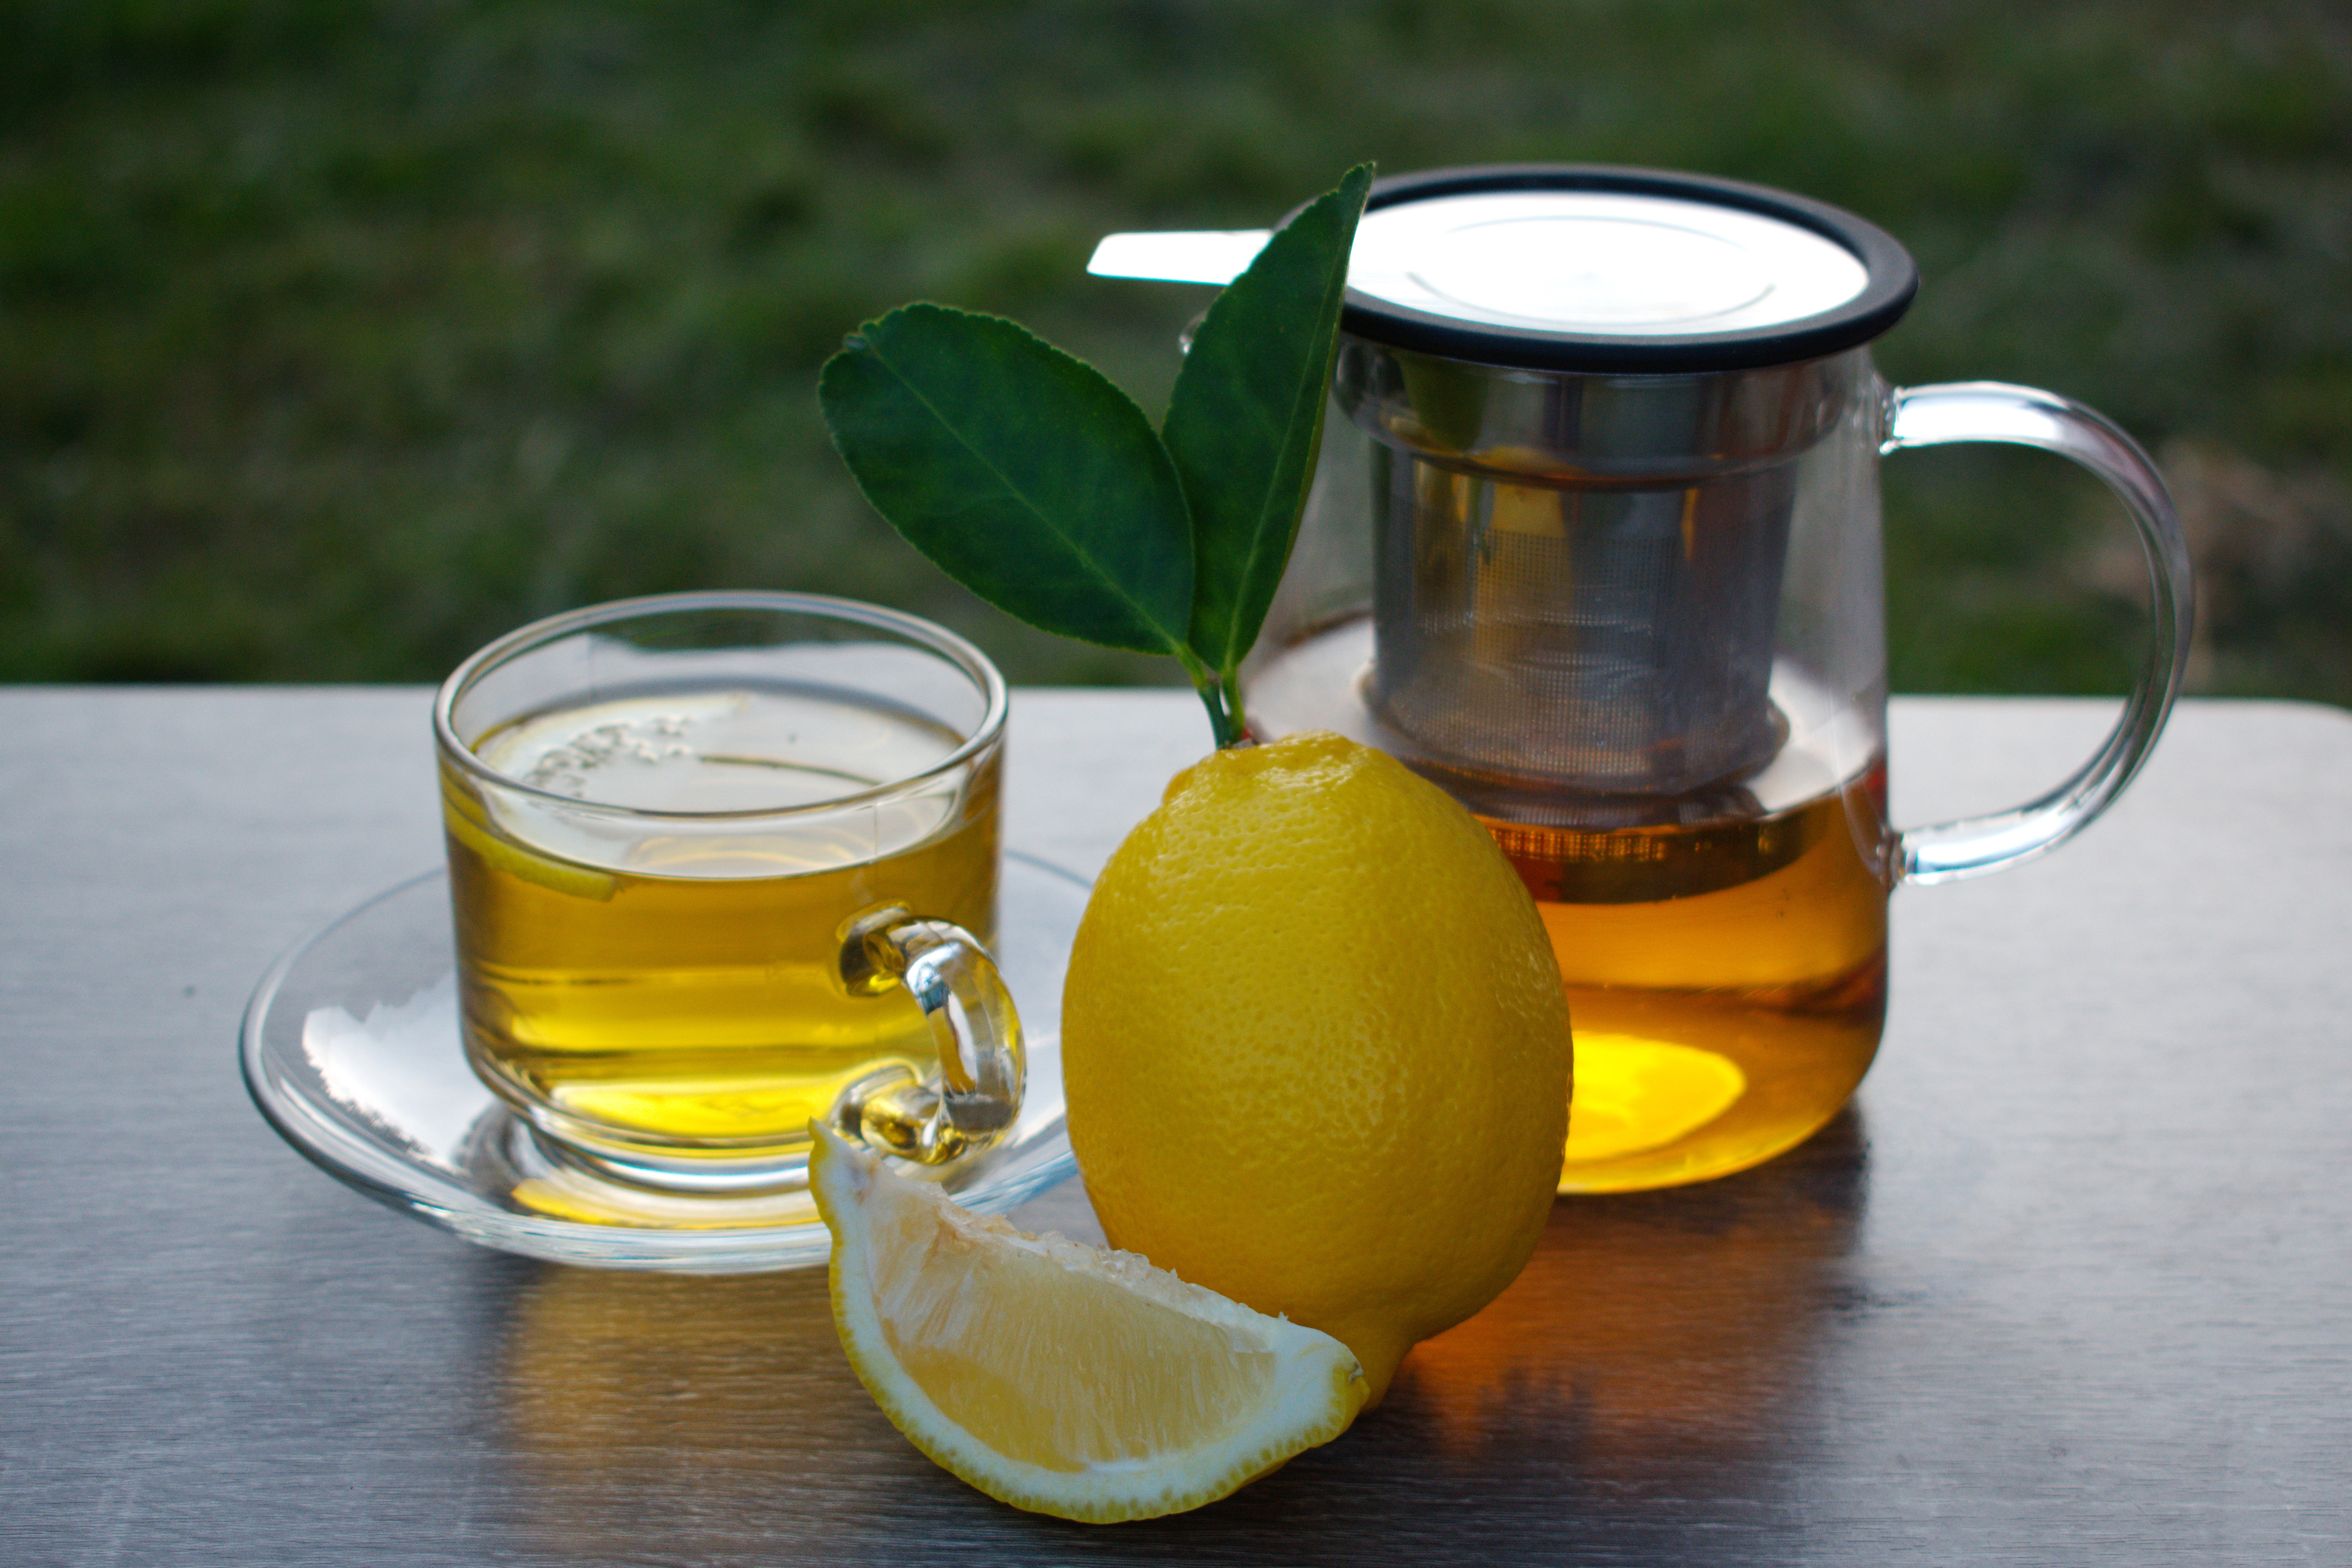 Green tea is one of the most popular drinks out there, and for good reason. This antioxidant will make you feel so fresh and clean. Look at these green tea recipes!